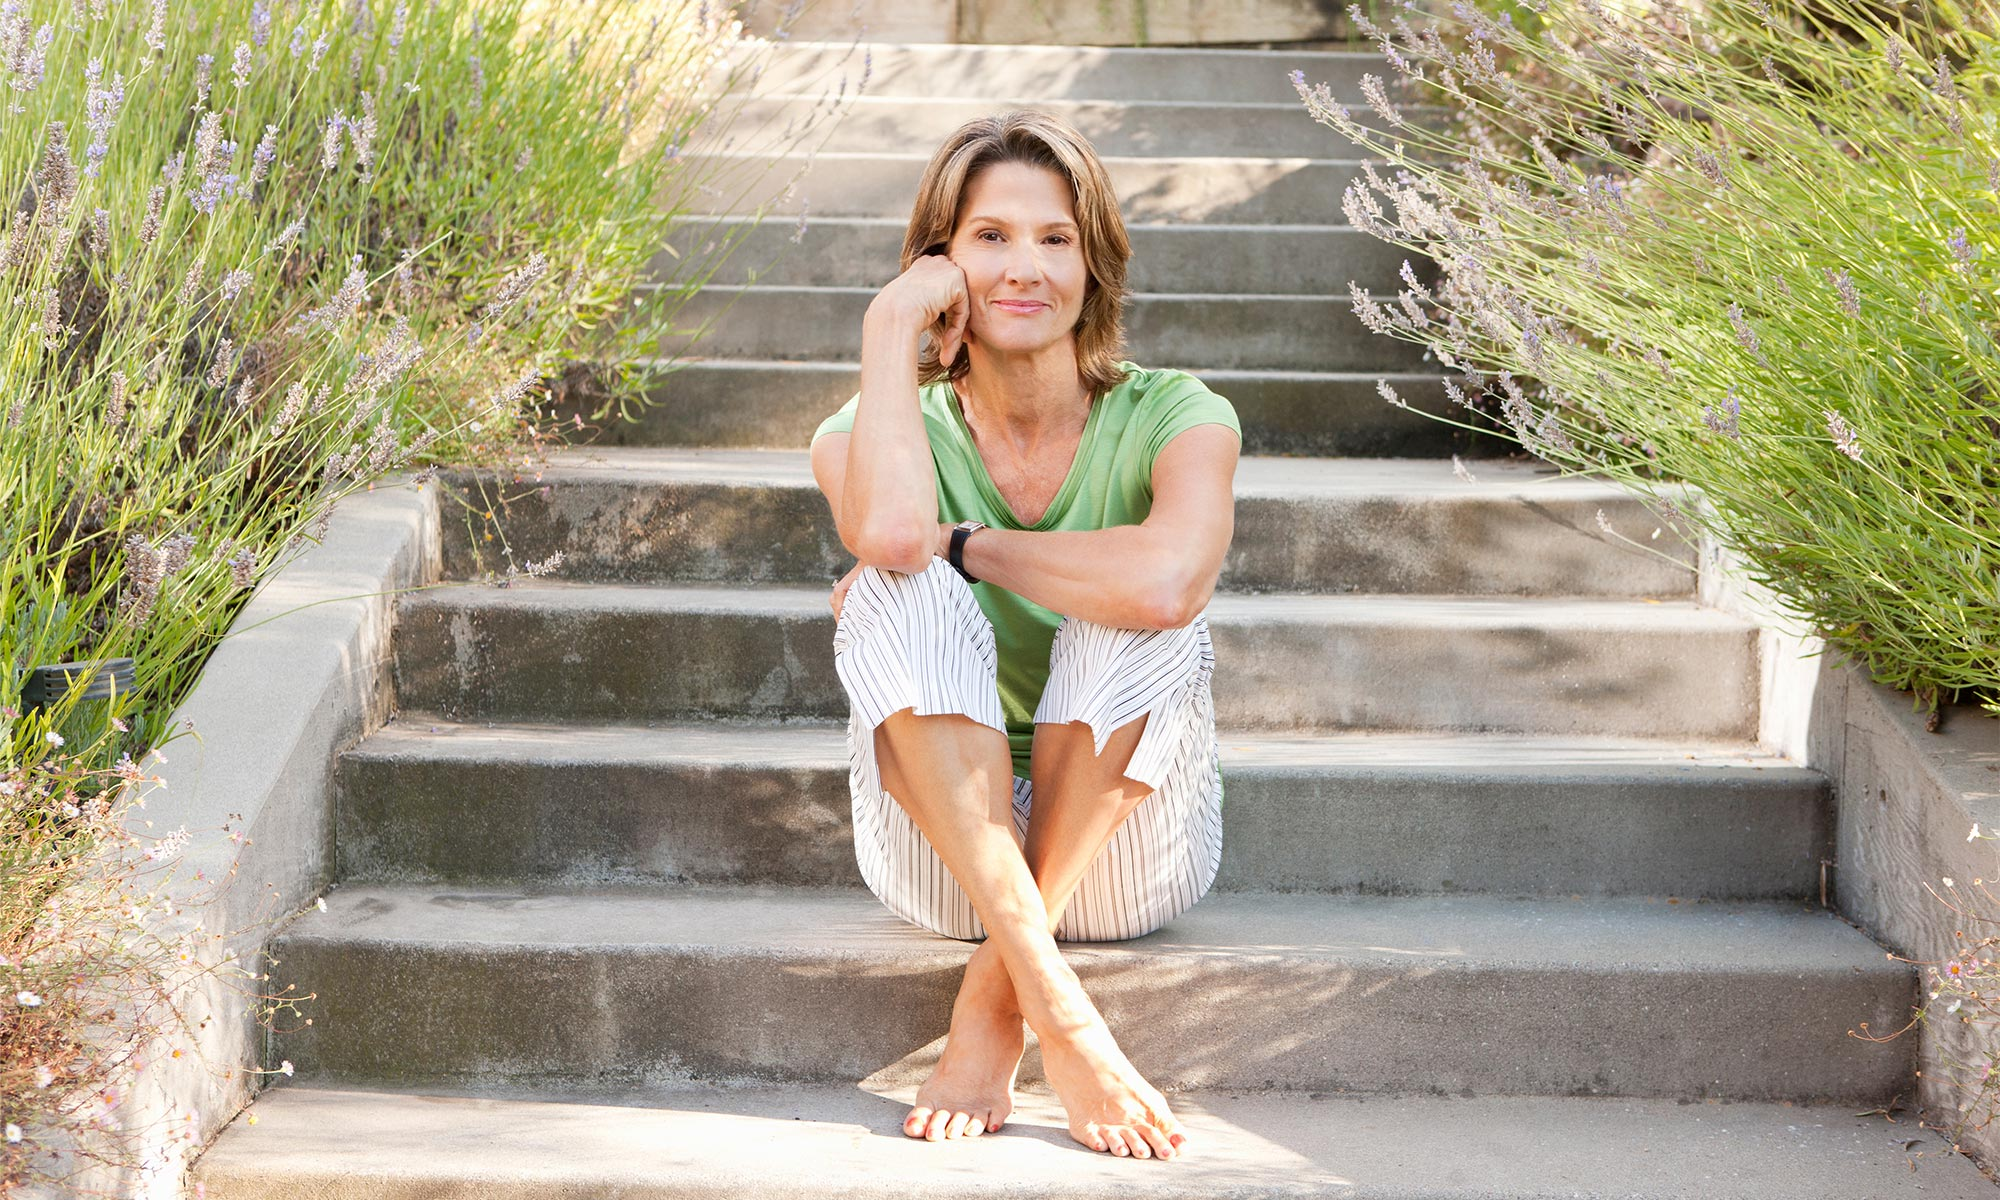 Woman sitting barefoot on steps.